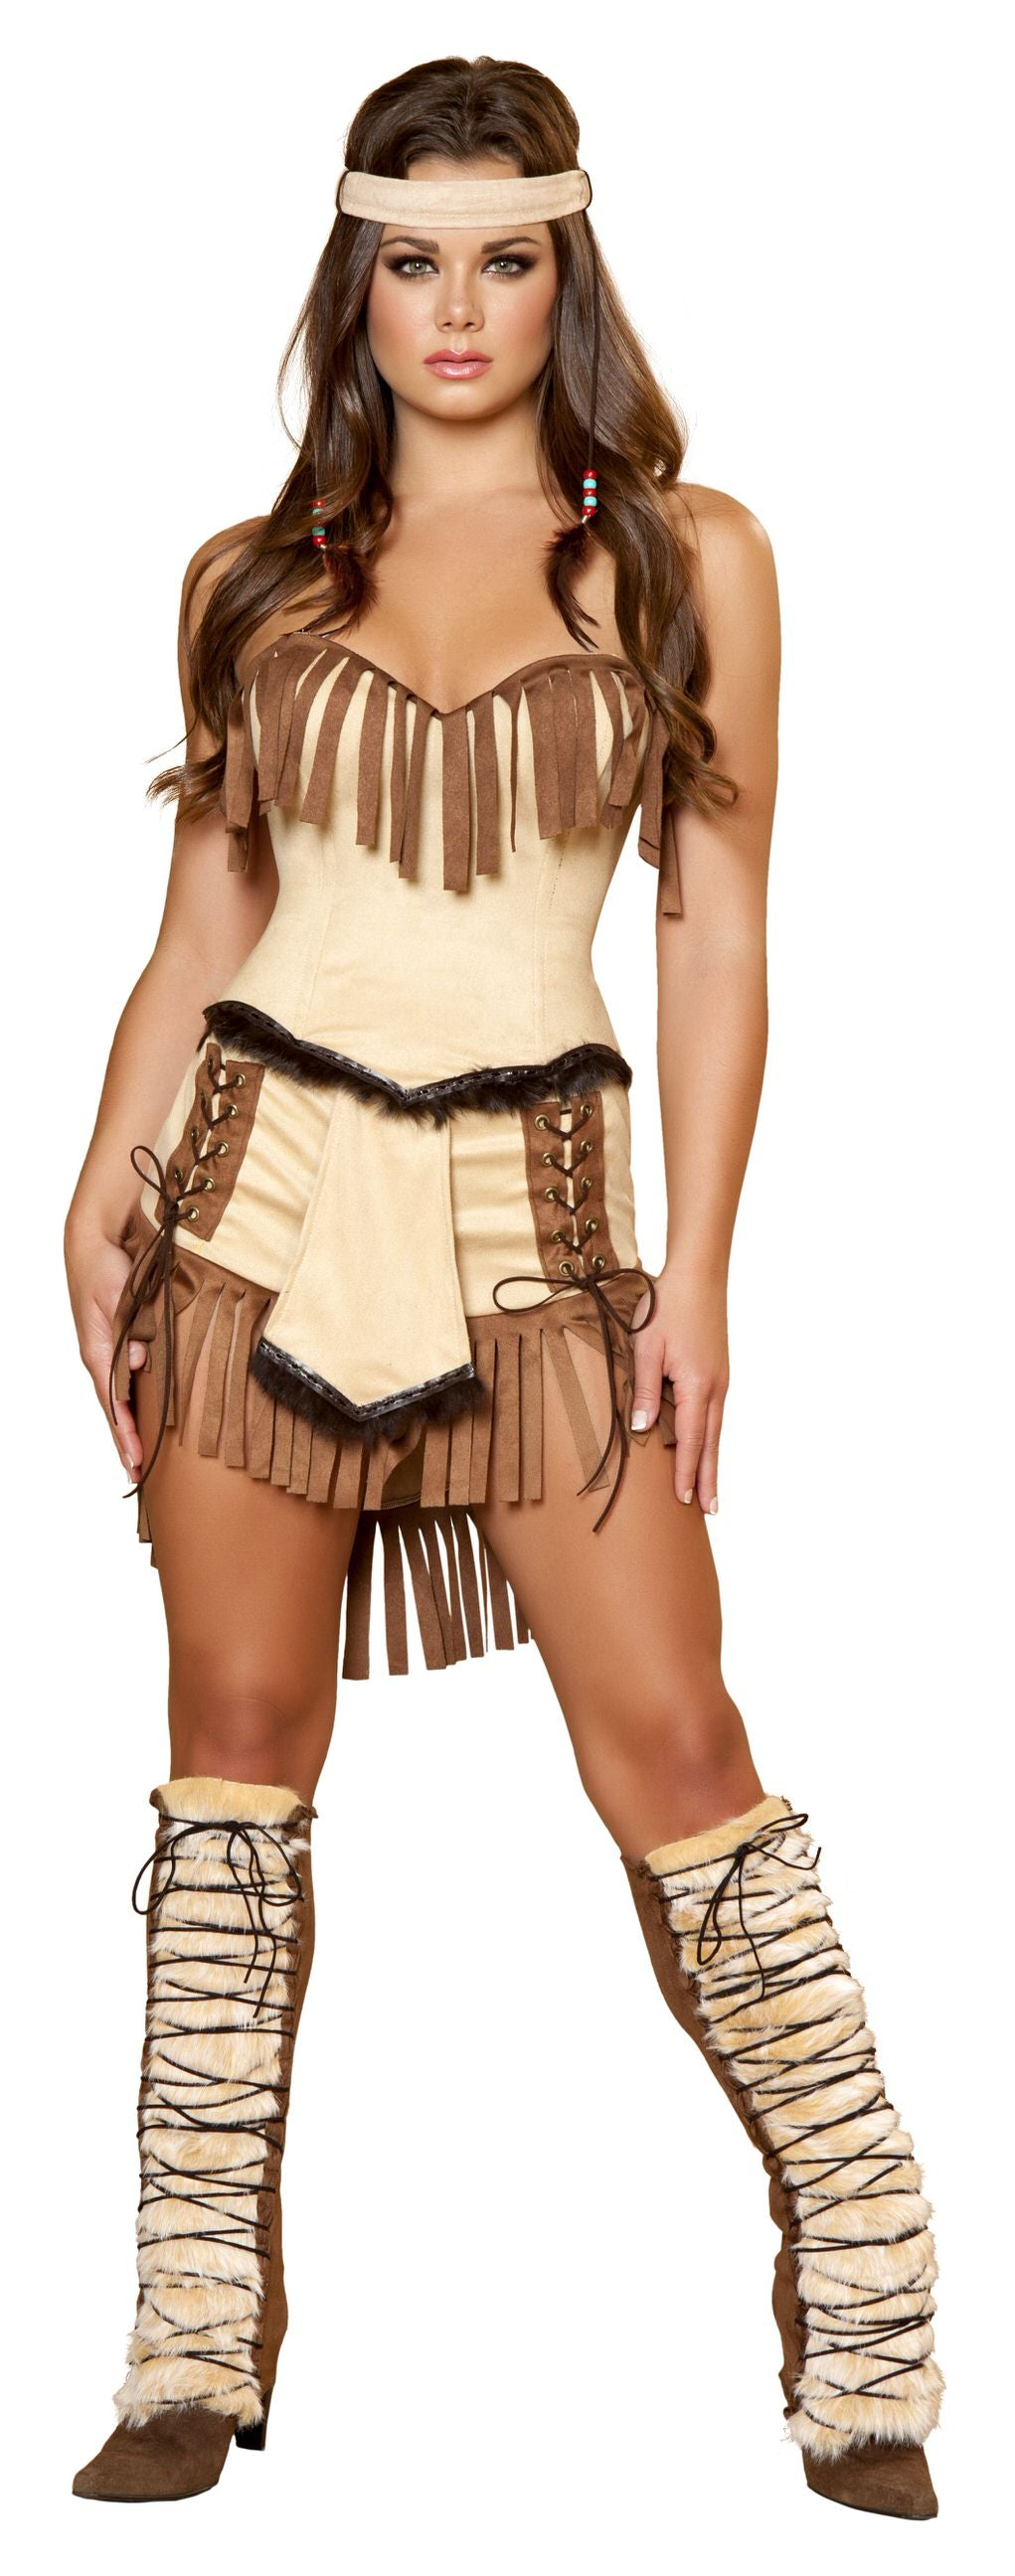 3-Piece-Indian-Princess-Tan-Fringe-Fur-Corset-&-Shorts-Costume